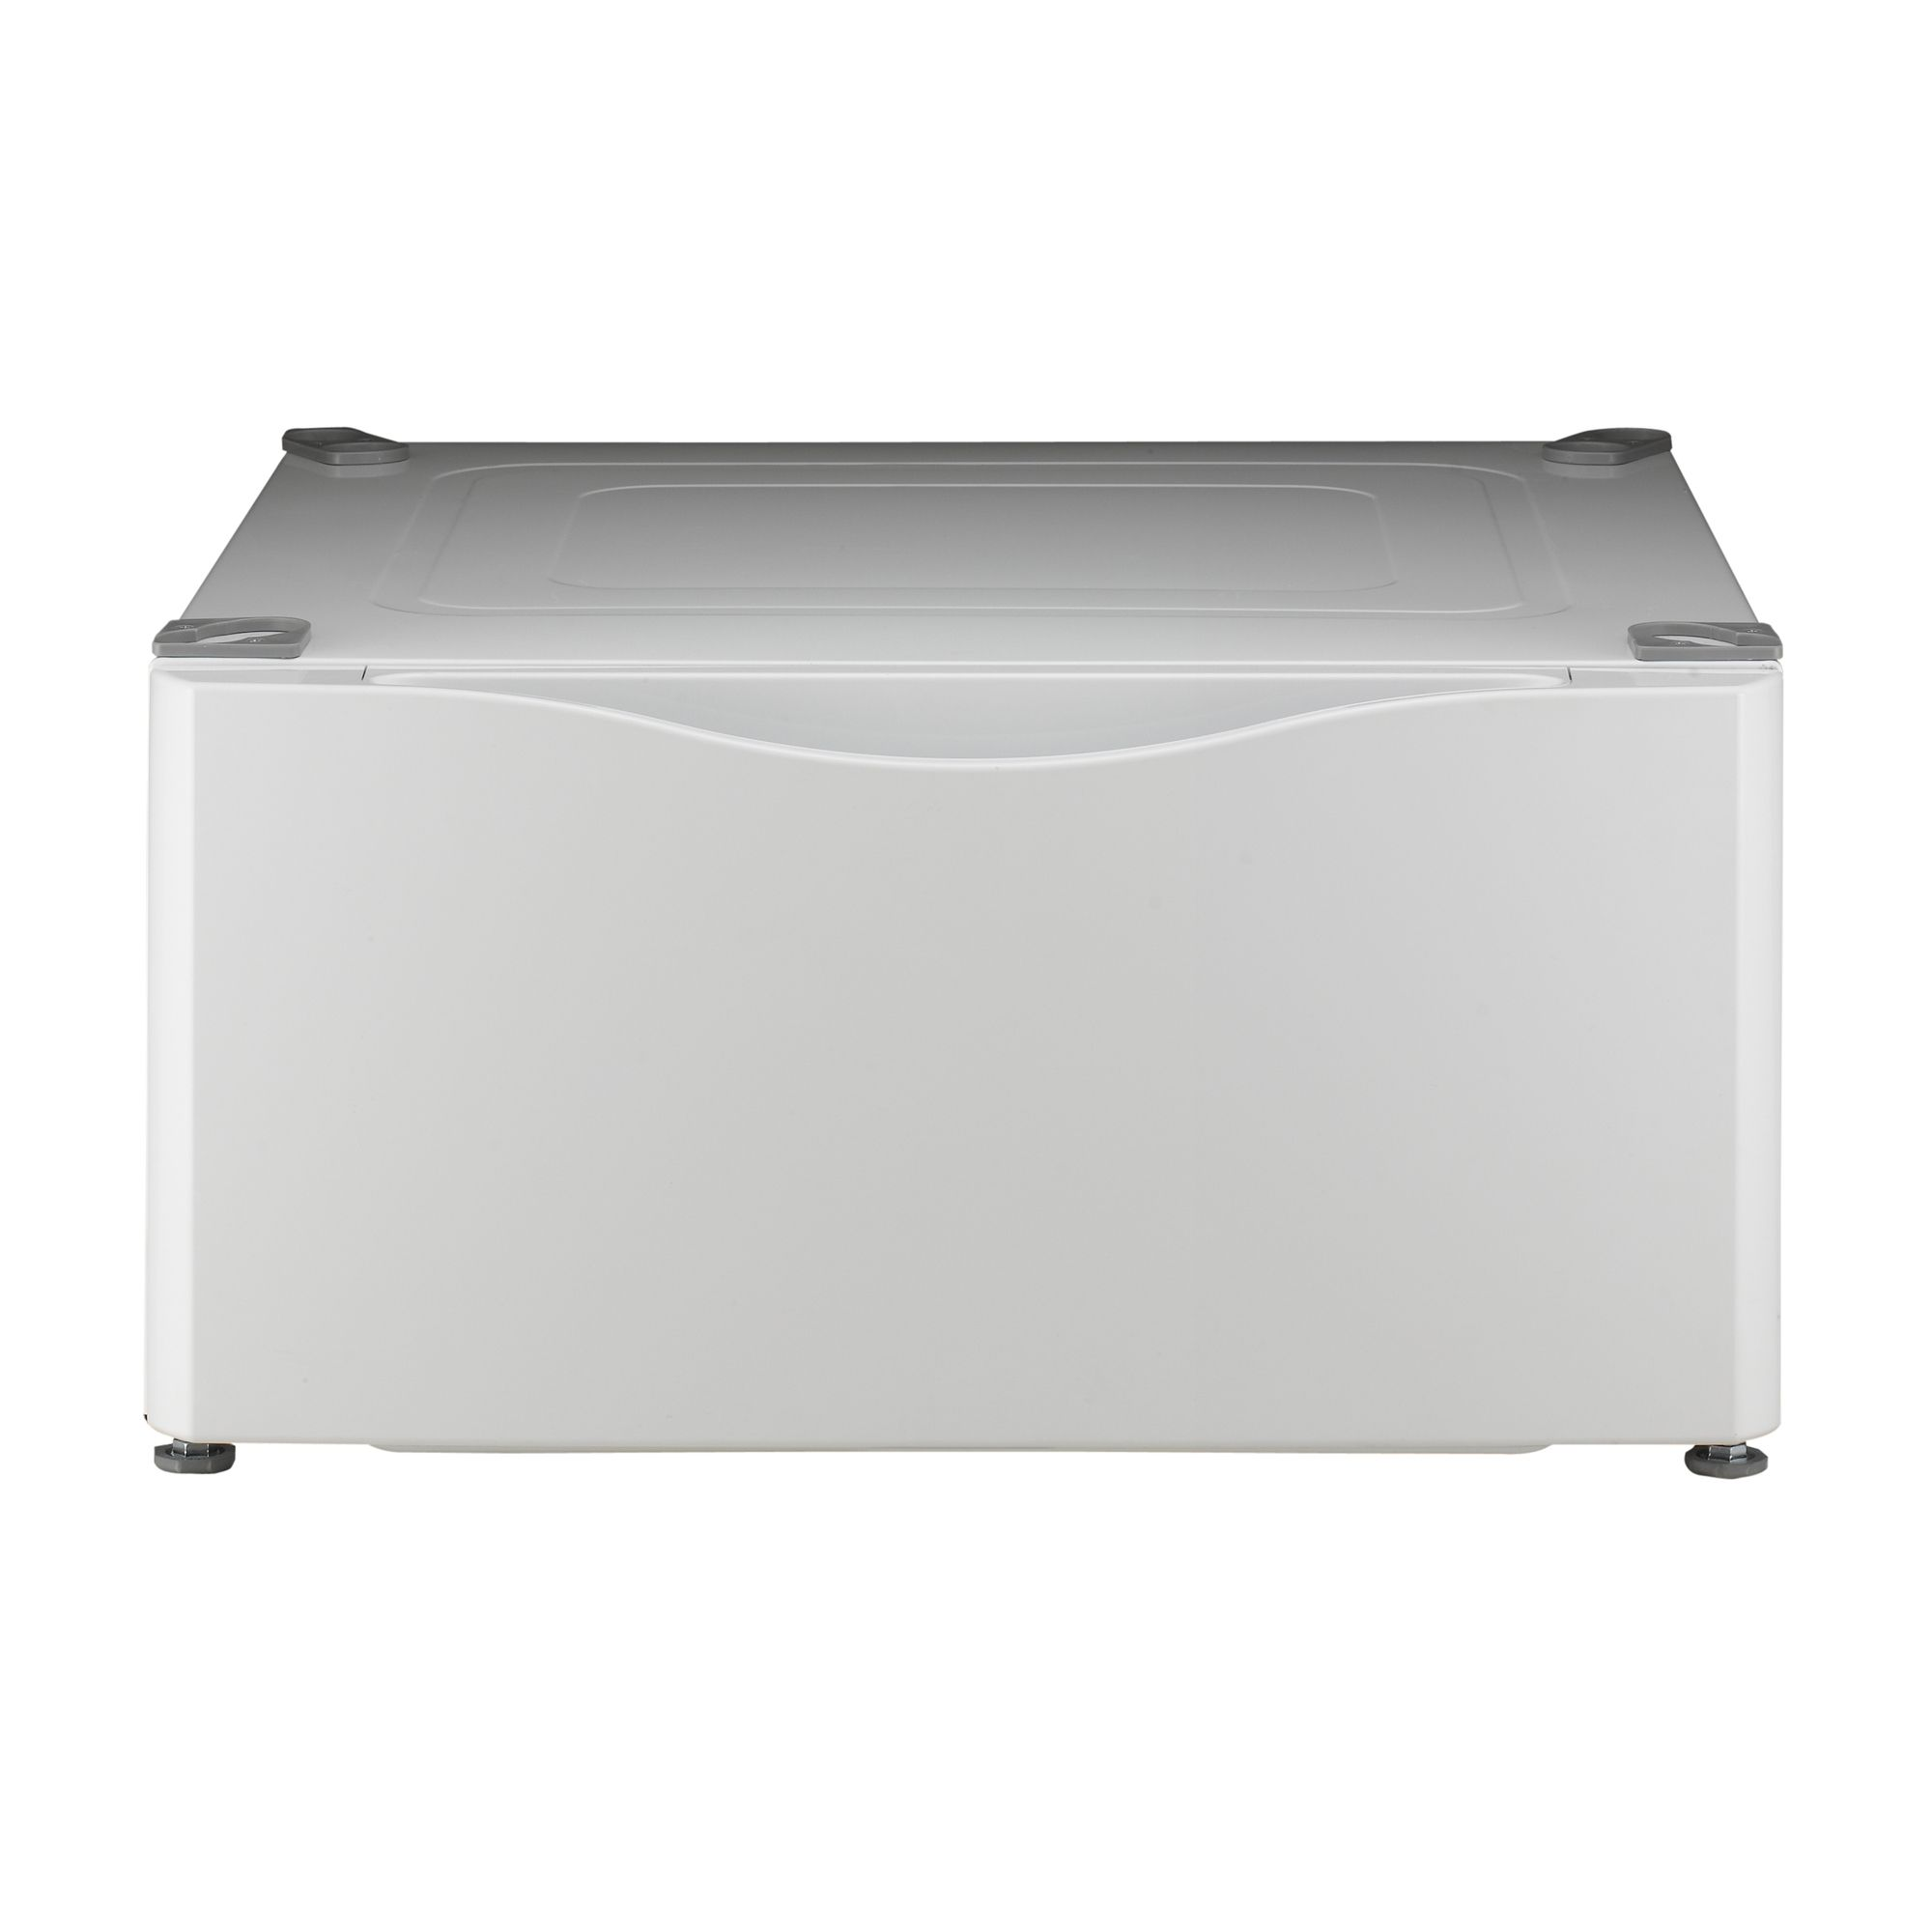 13-7-Laundry-Pedestal-w-Storage-Drawer-White